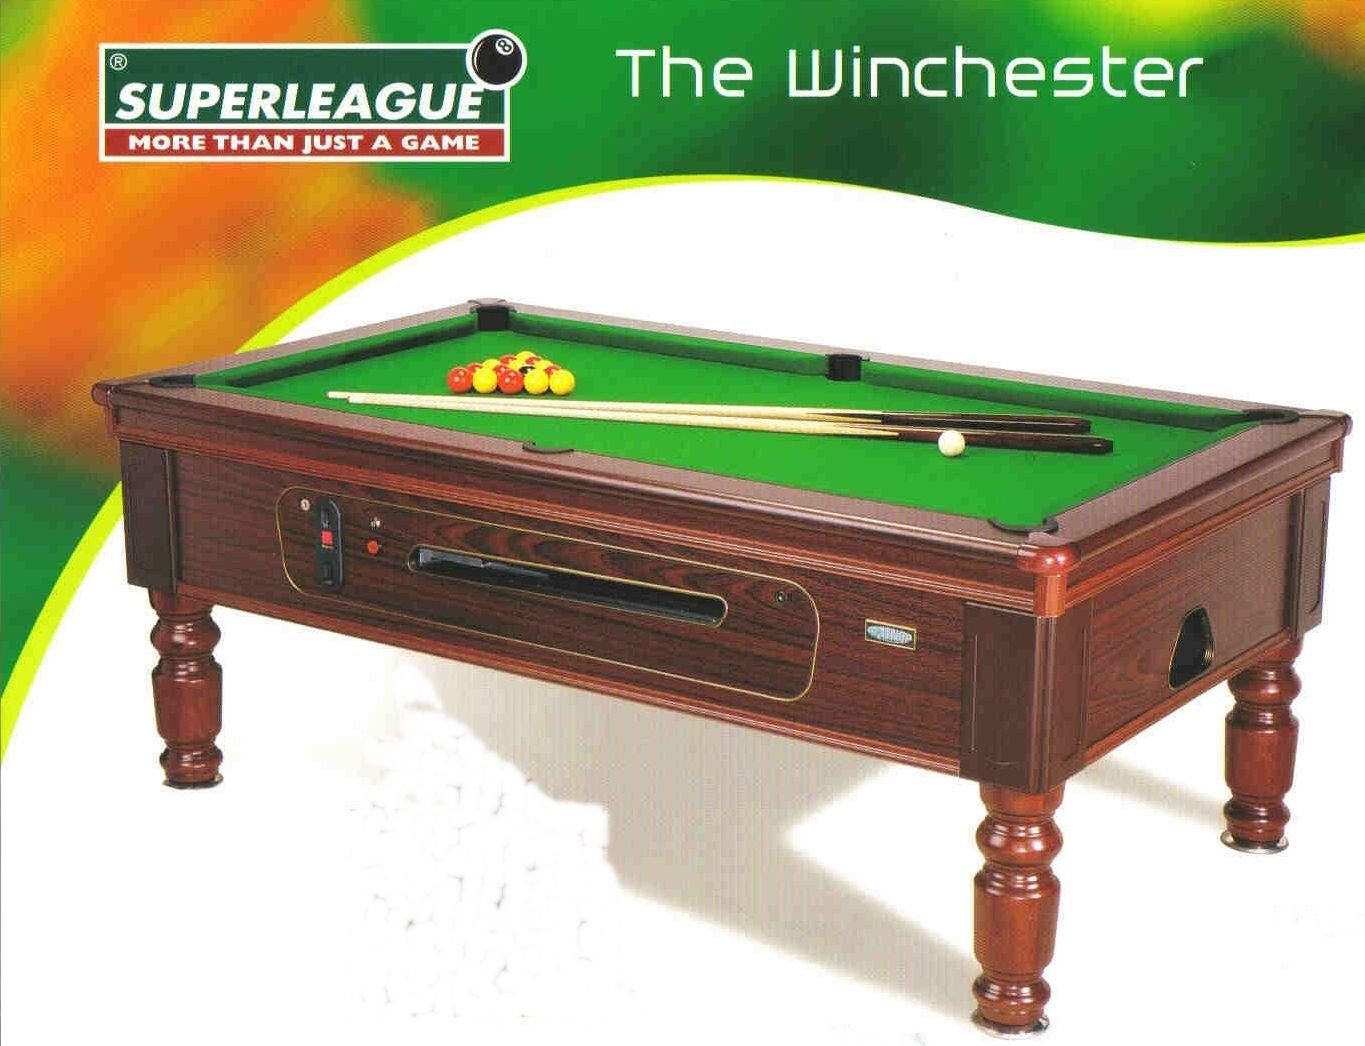 Merveilleux BRAND NEW 7 Feet X 4 Feet SUPERLEAGUE TRADITIONAL POOL TABLE SLATE BED  CHAMPIONHIP QUALITY